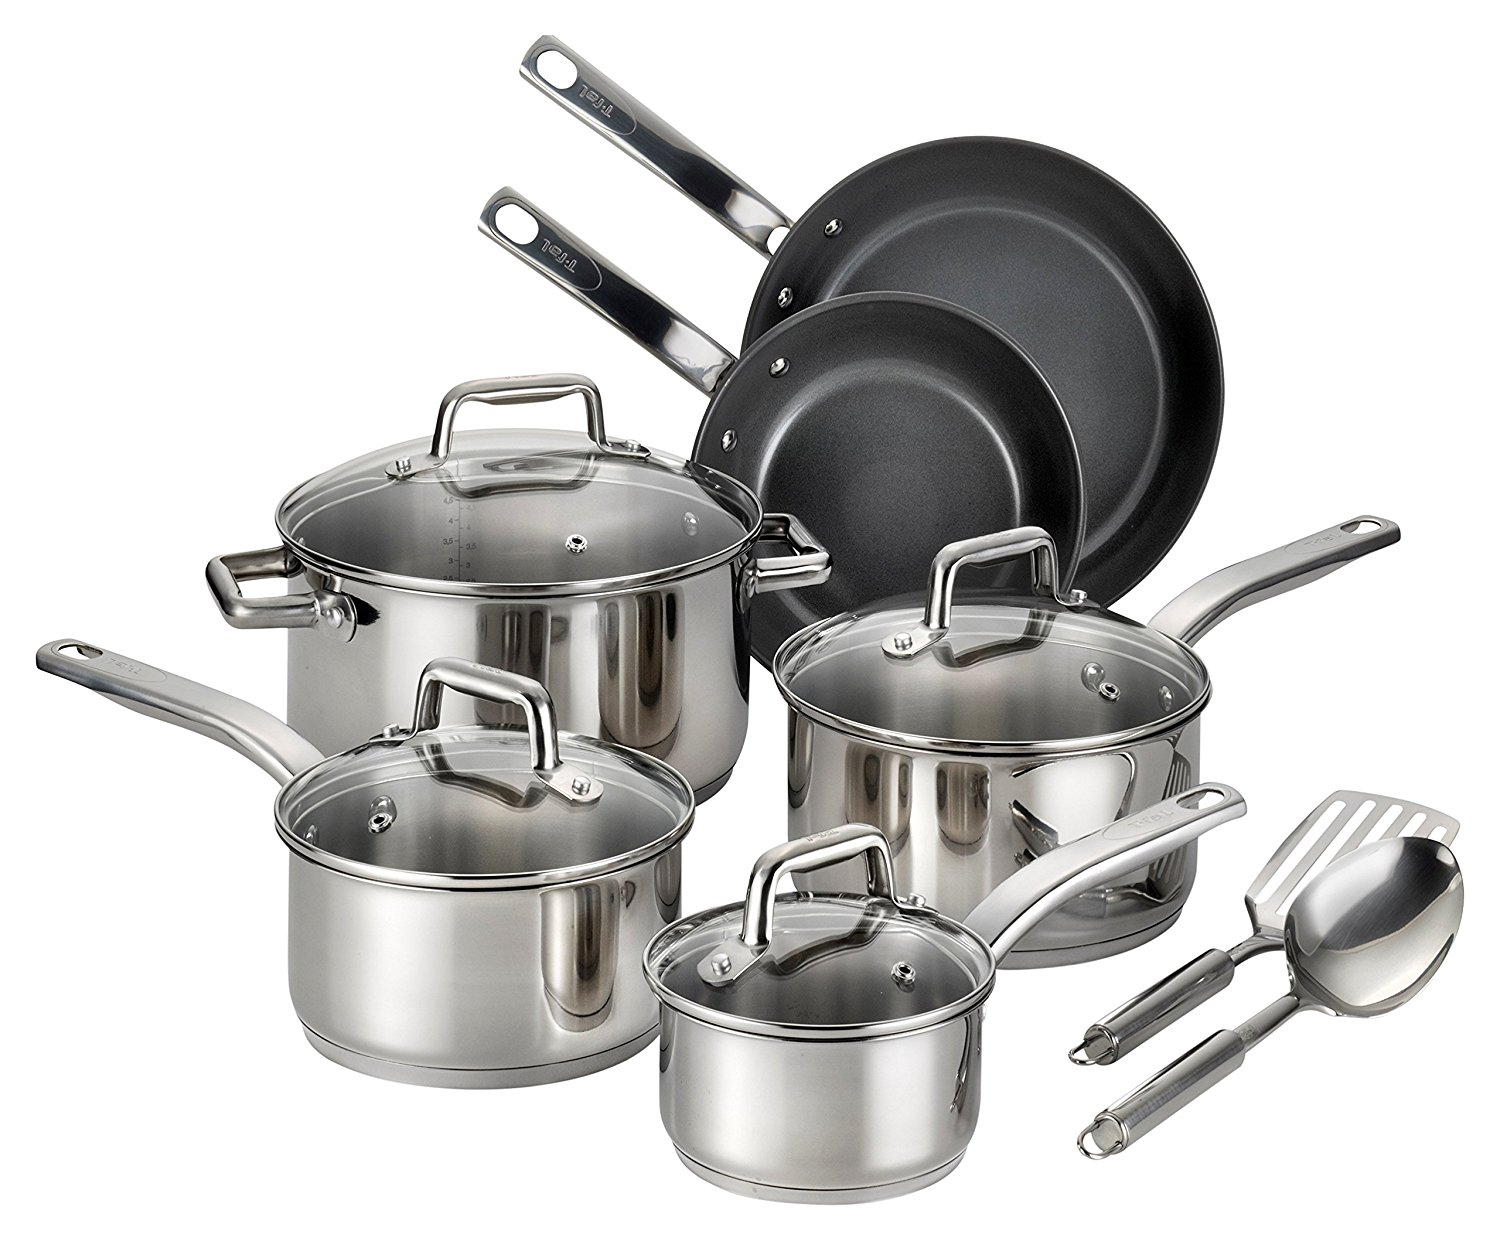 T Fal Precision Stainless Steel Nonstick Scratch Resistant Dishwasher Safe Oven Safe 12 Piece